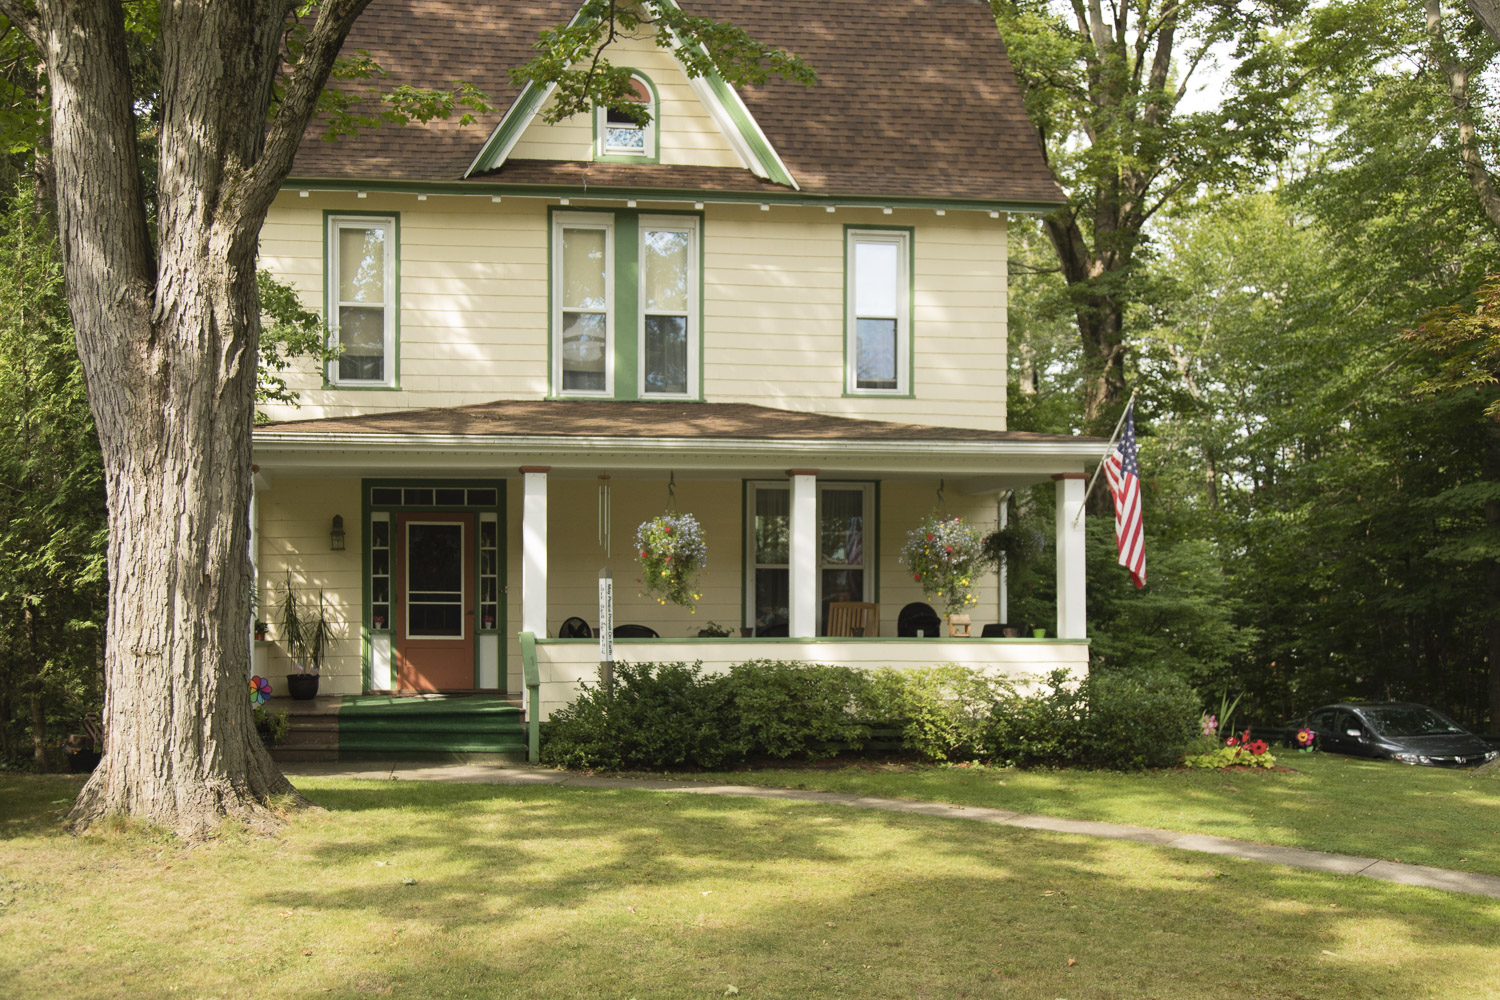 One of many way too cute for words houses. Chautauqua homes feature porches, lots of them, gingerbread, and flowers! AmericanFlags too!